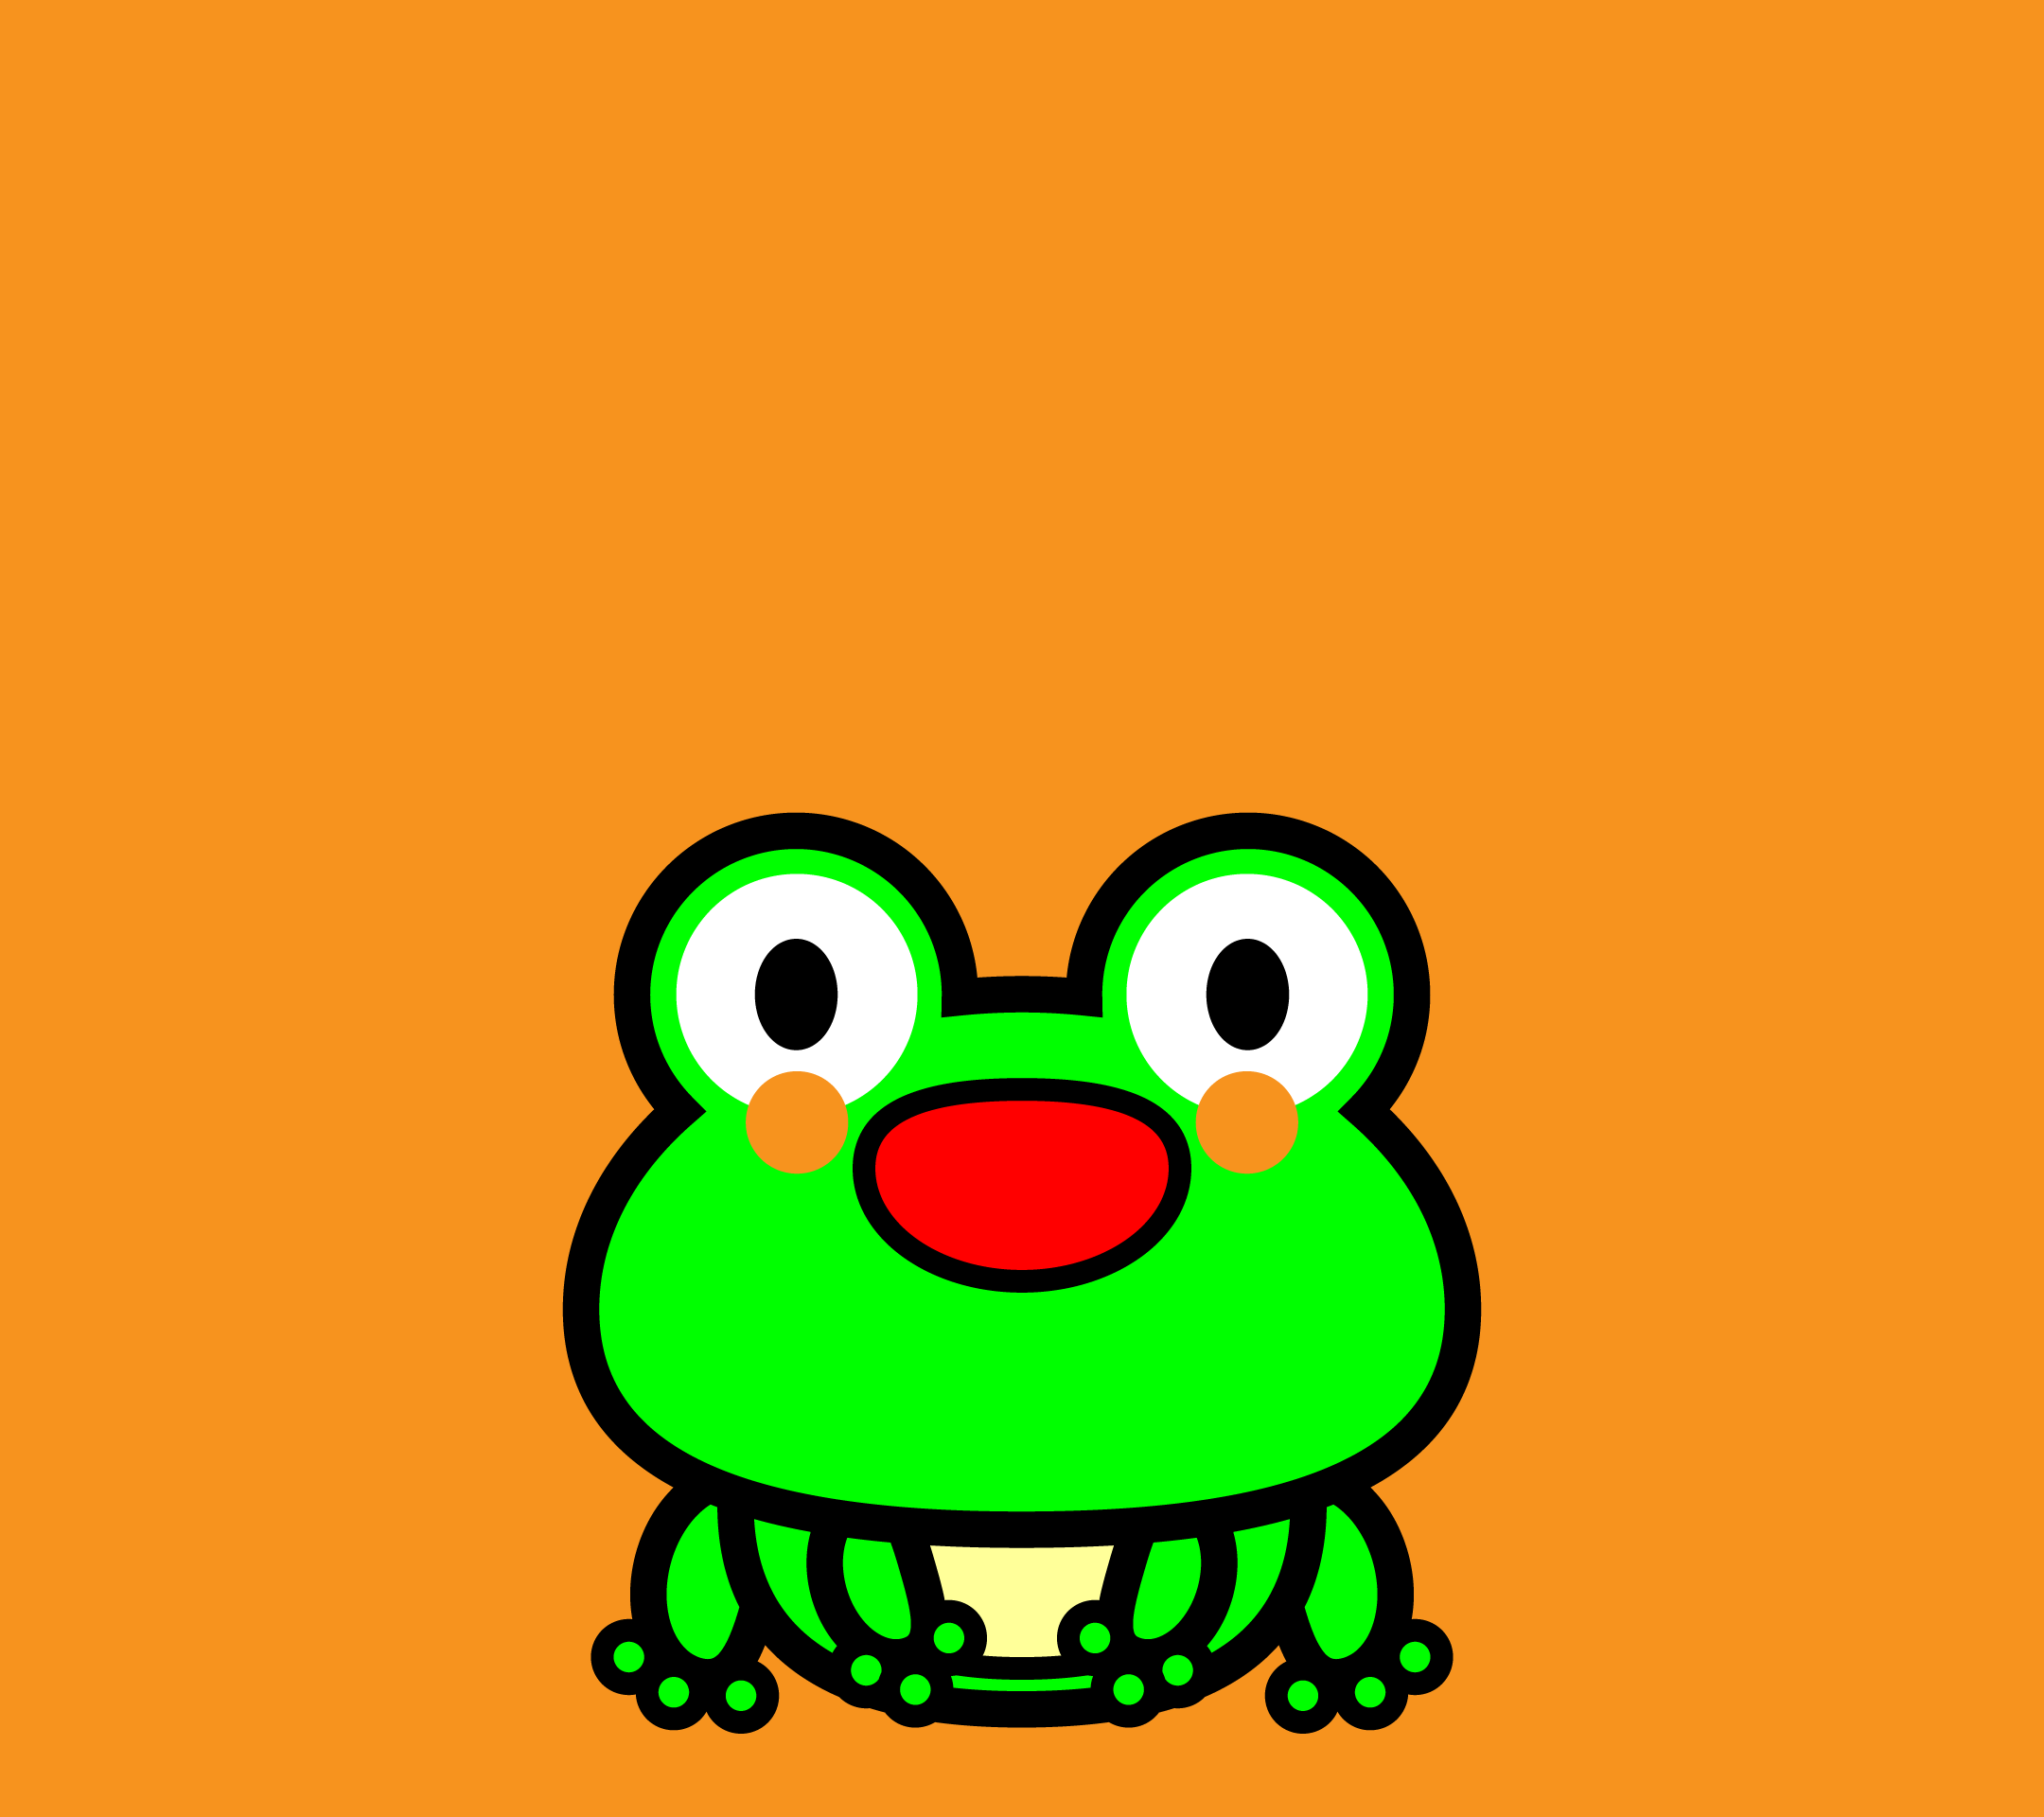 wallpaper1_sitfrog-orange-android